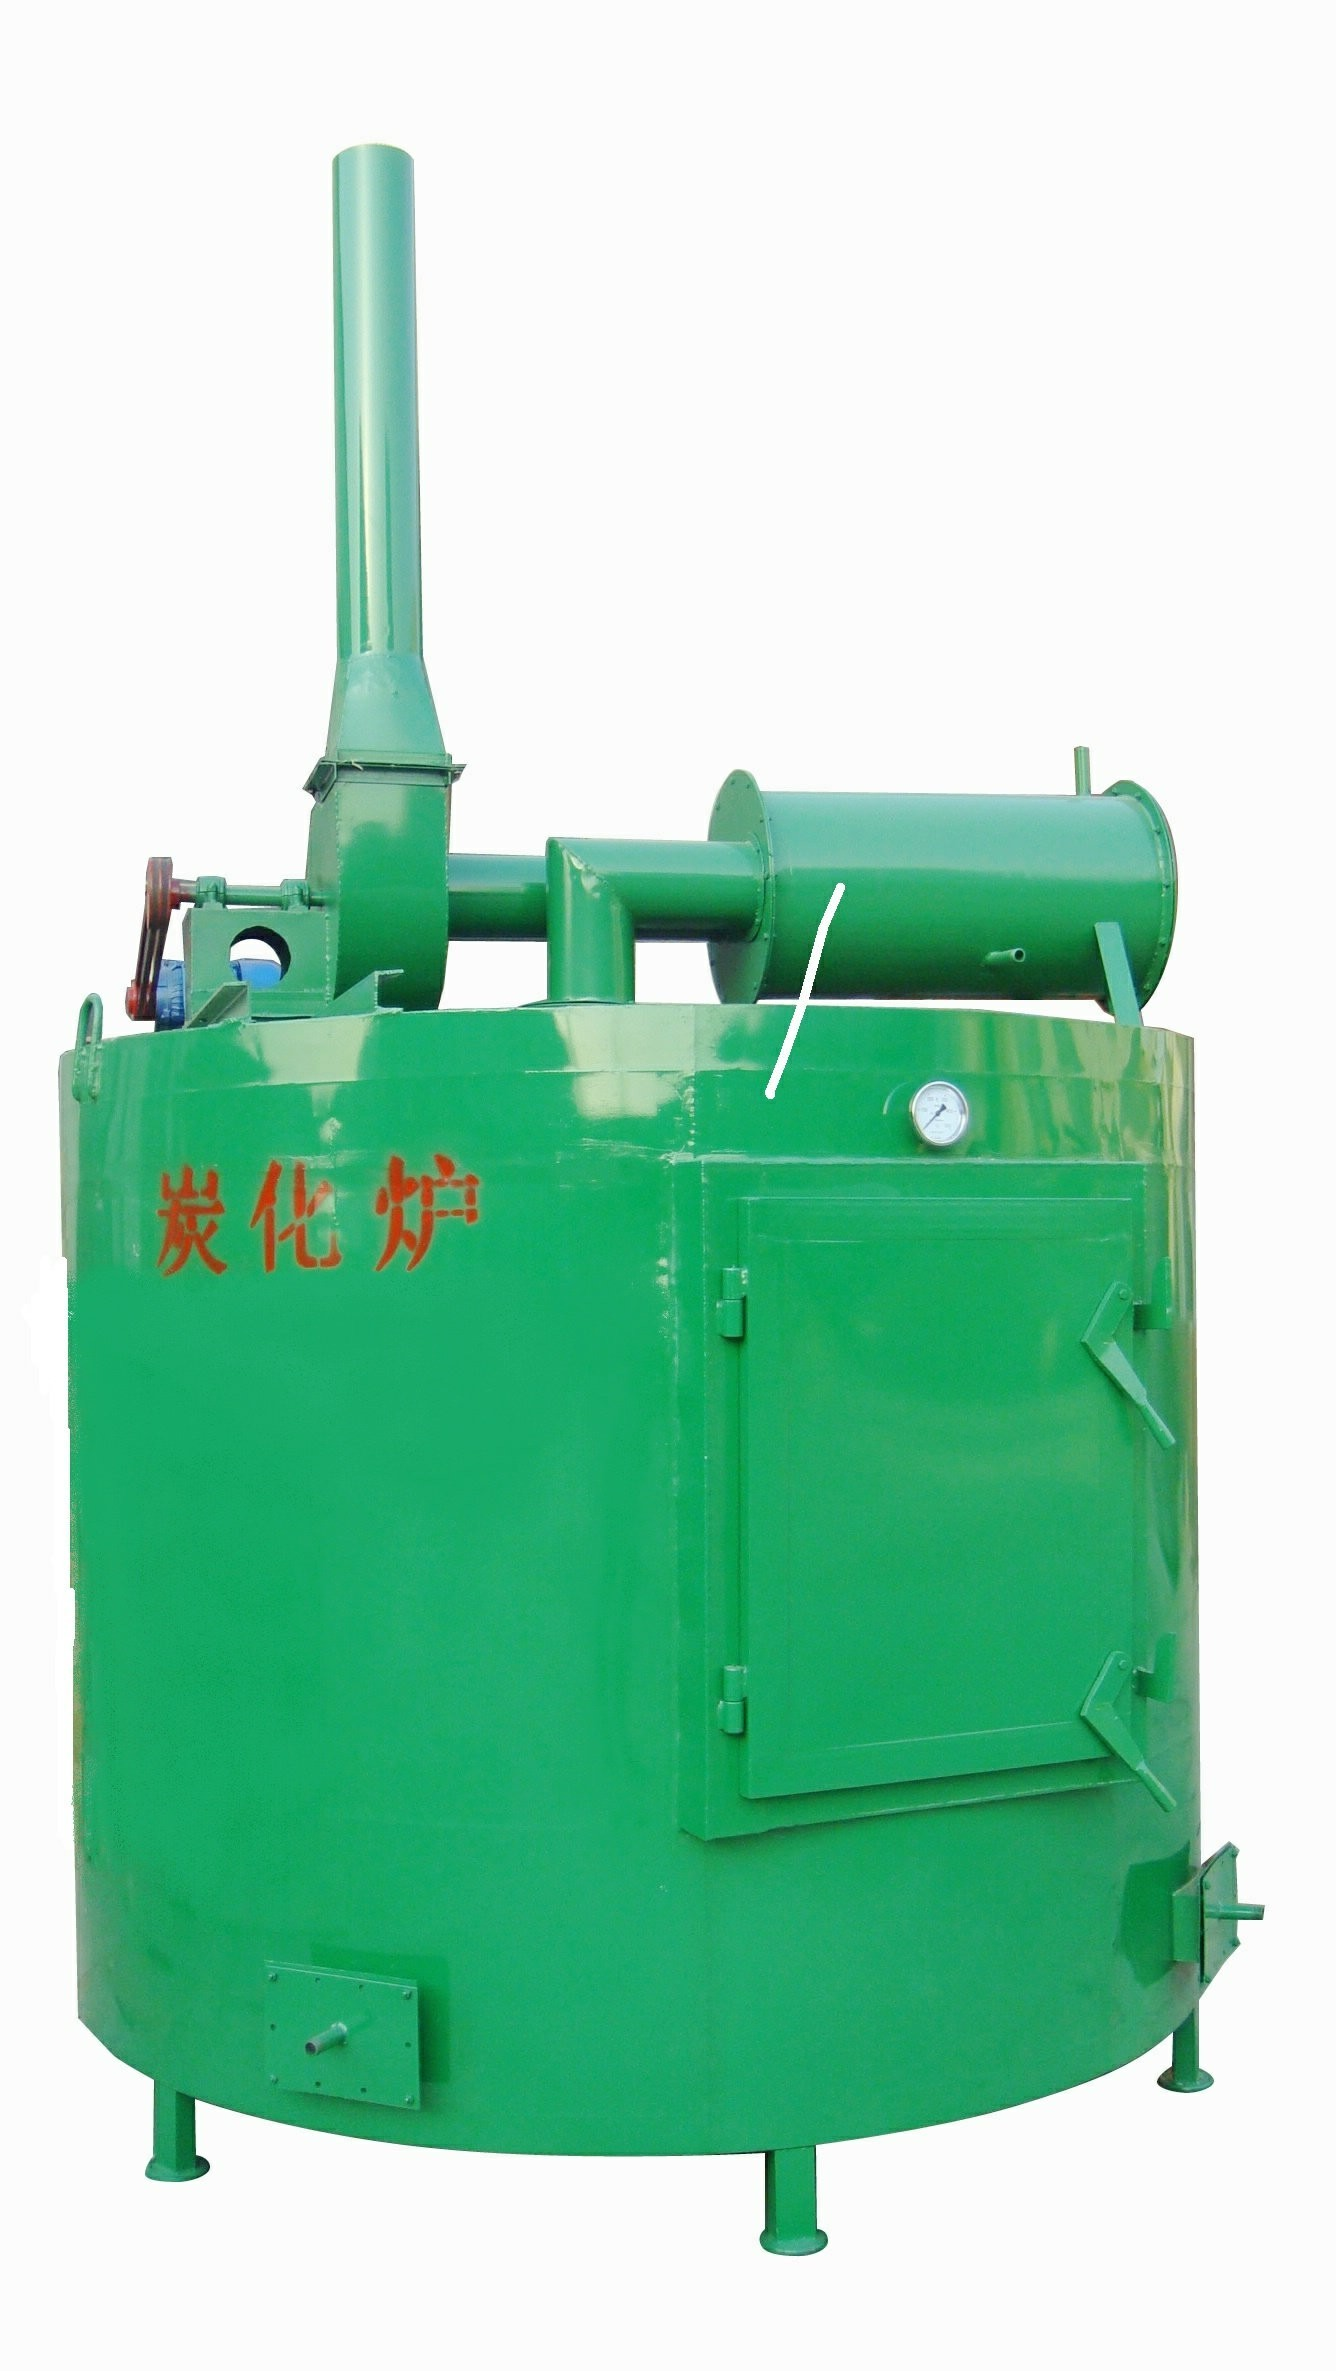 Round Spontaneous combustion type Carbonization furnace